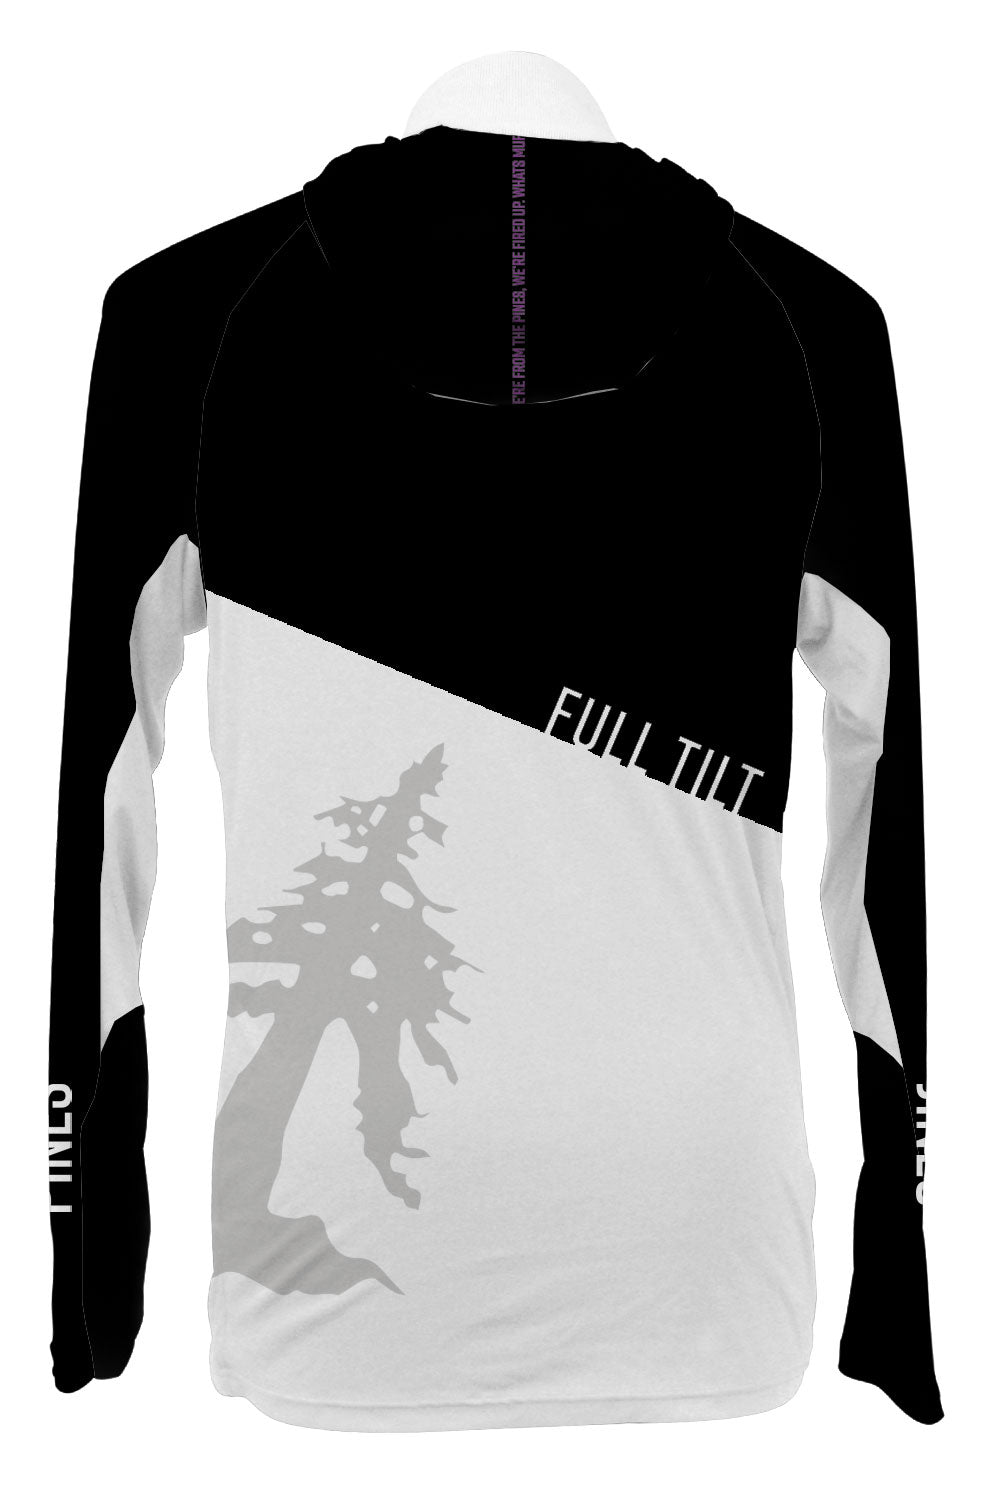 Jines in the Pines Full Sub Revolution Hoodie